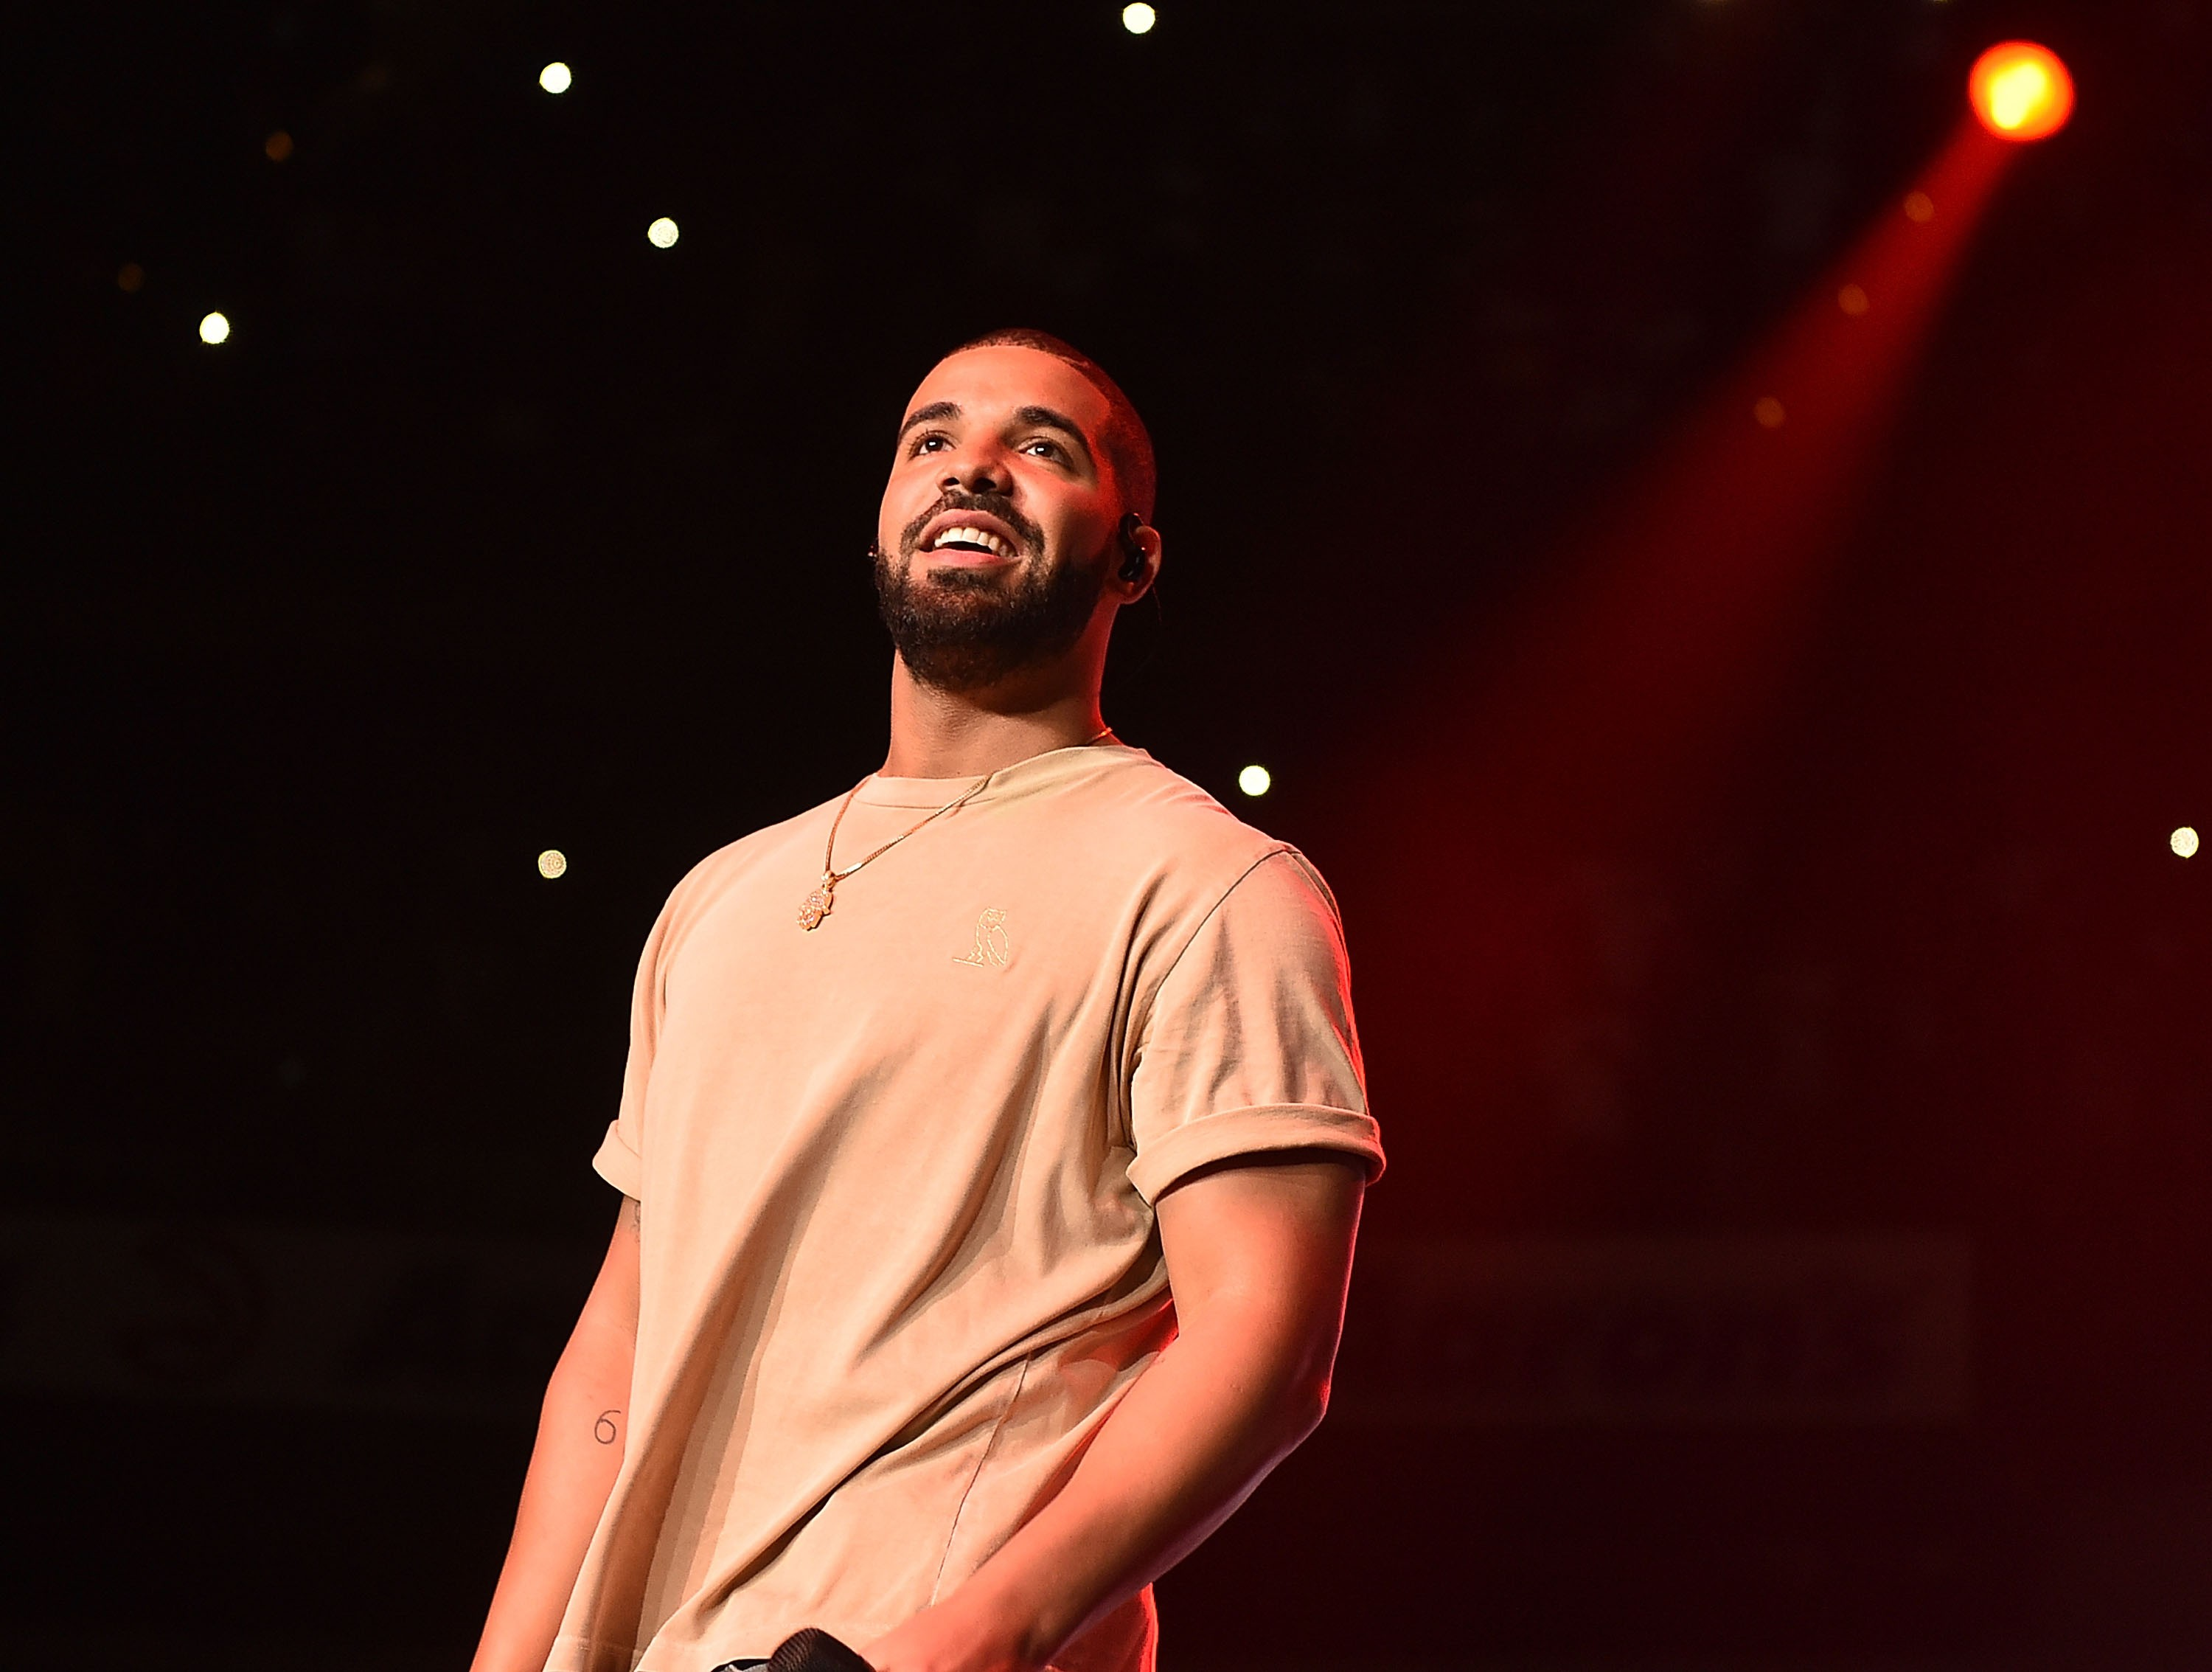 drake-postponed-miami-shows-because-he-was-sick-not-due-to-production-issues